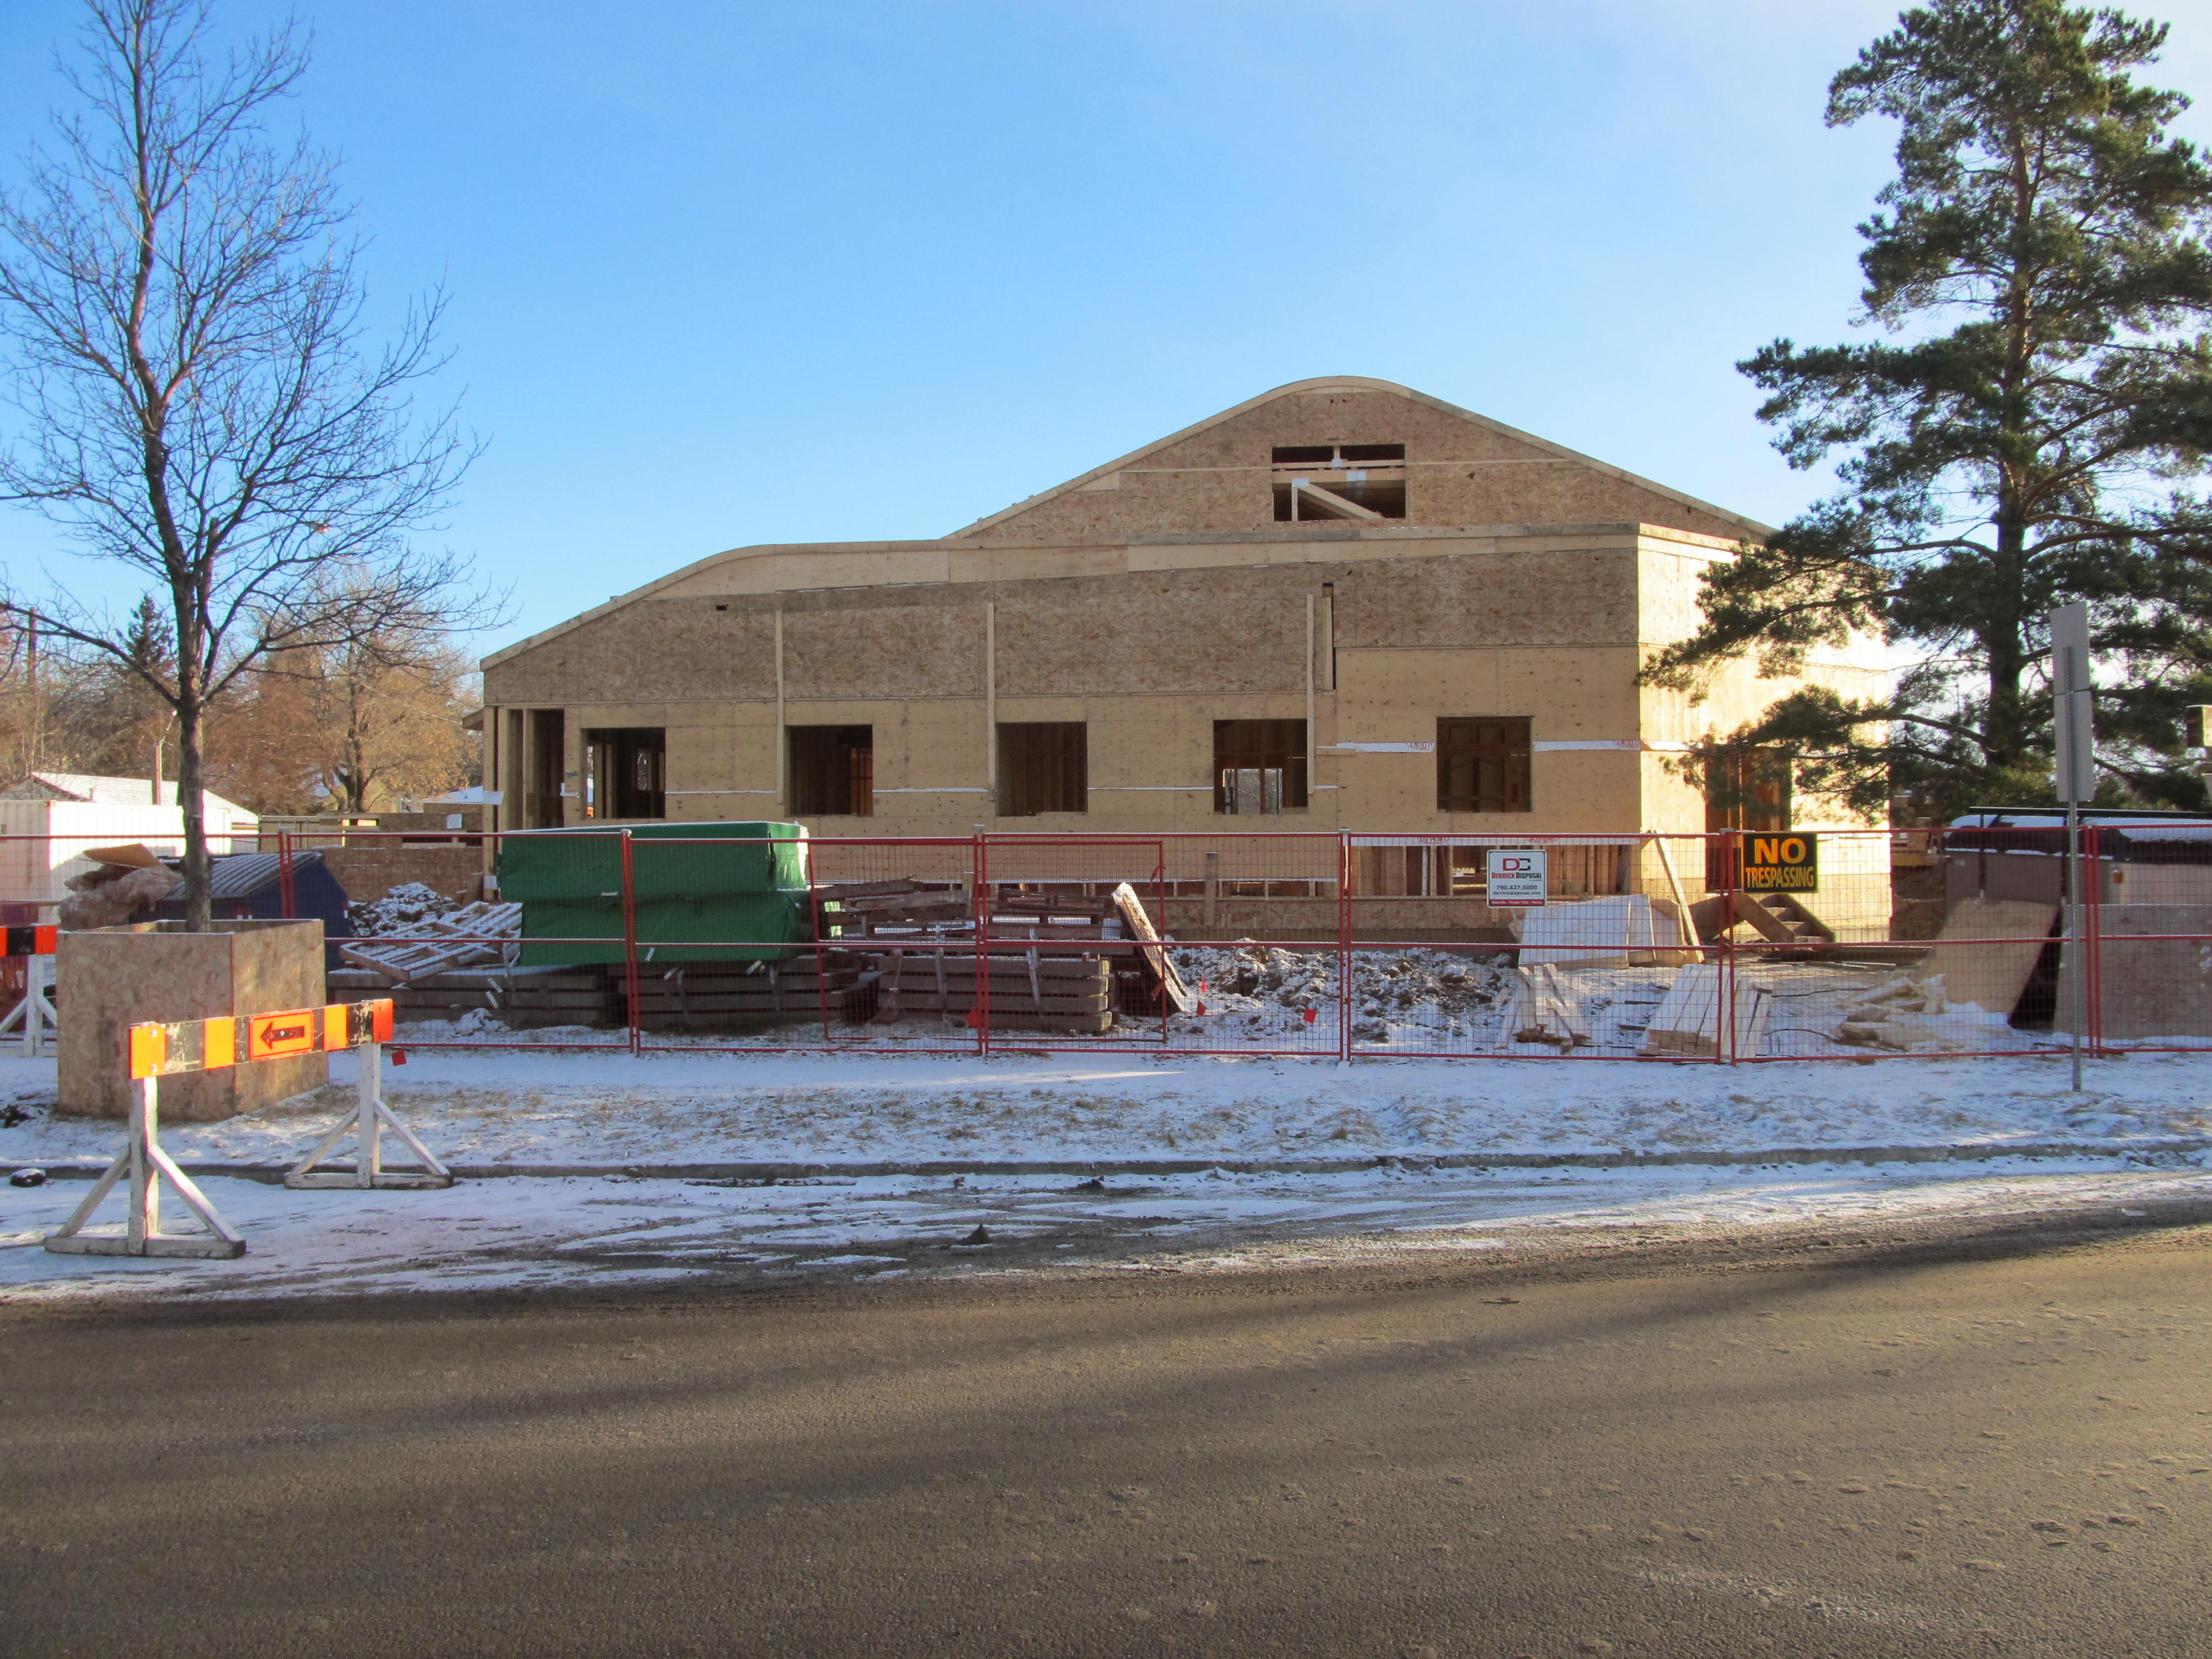 Church/Multi-use building fully enclosed (late December)